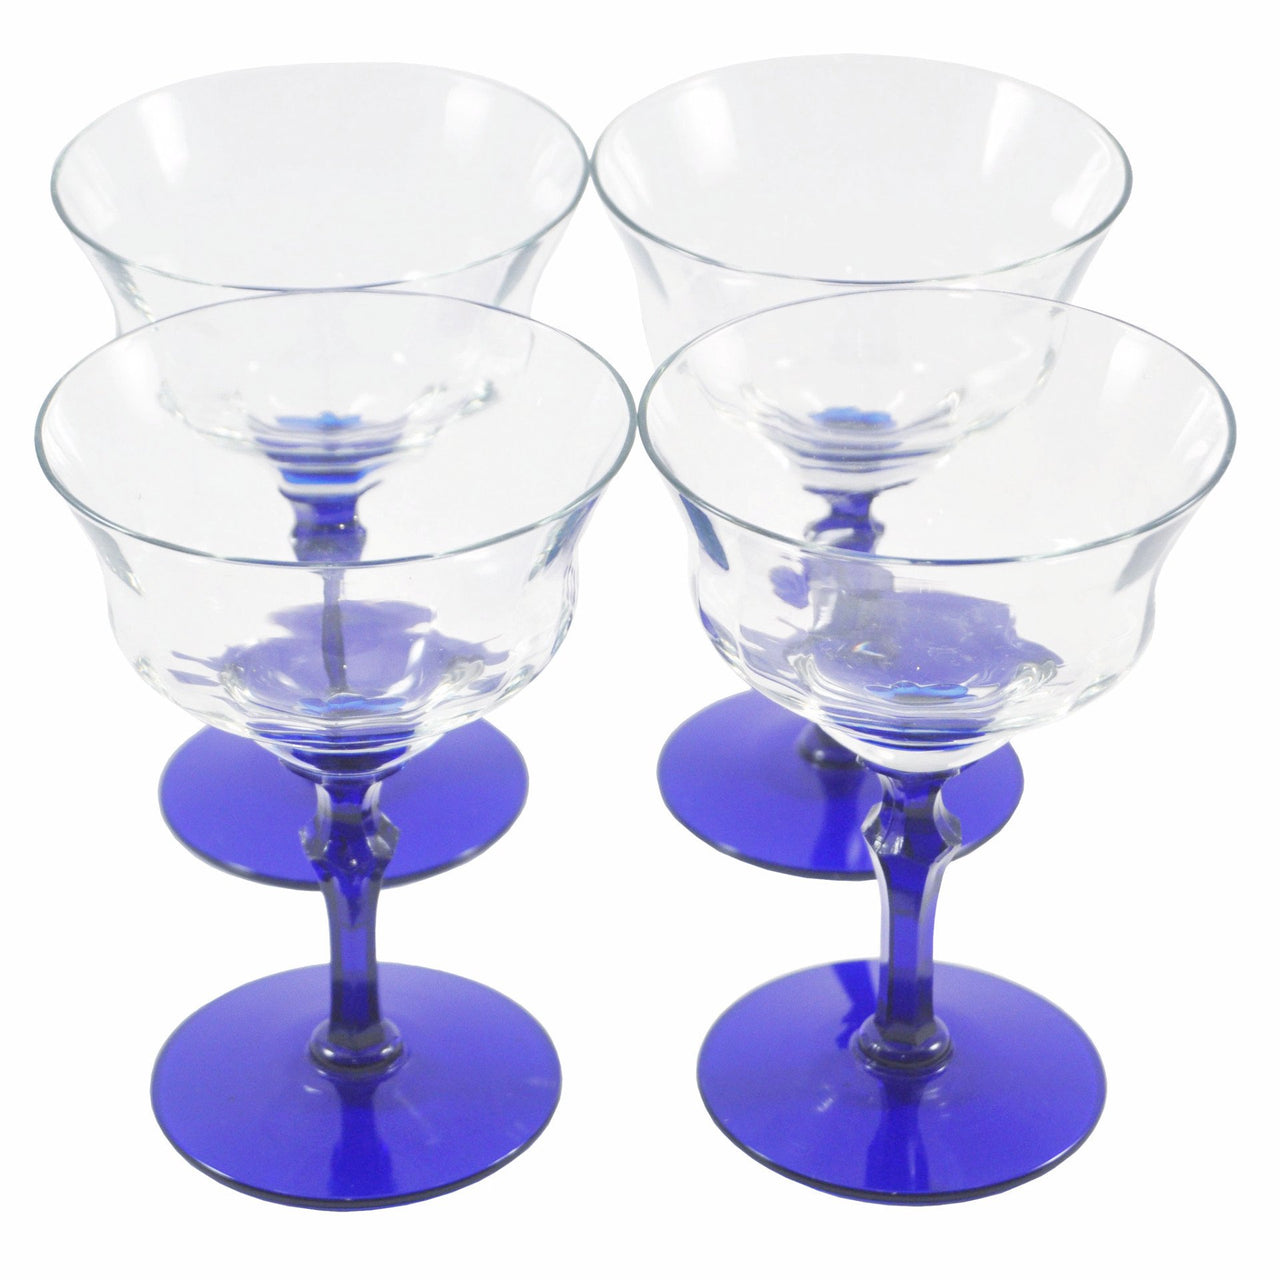 Vintage Cobalt Blue Stem Coupe Glasses, The Hour